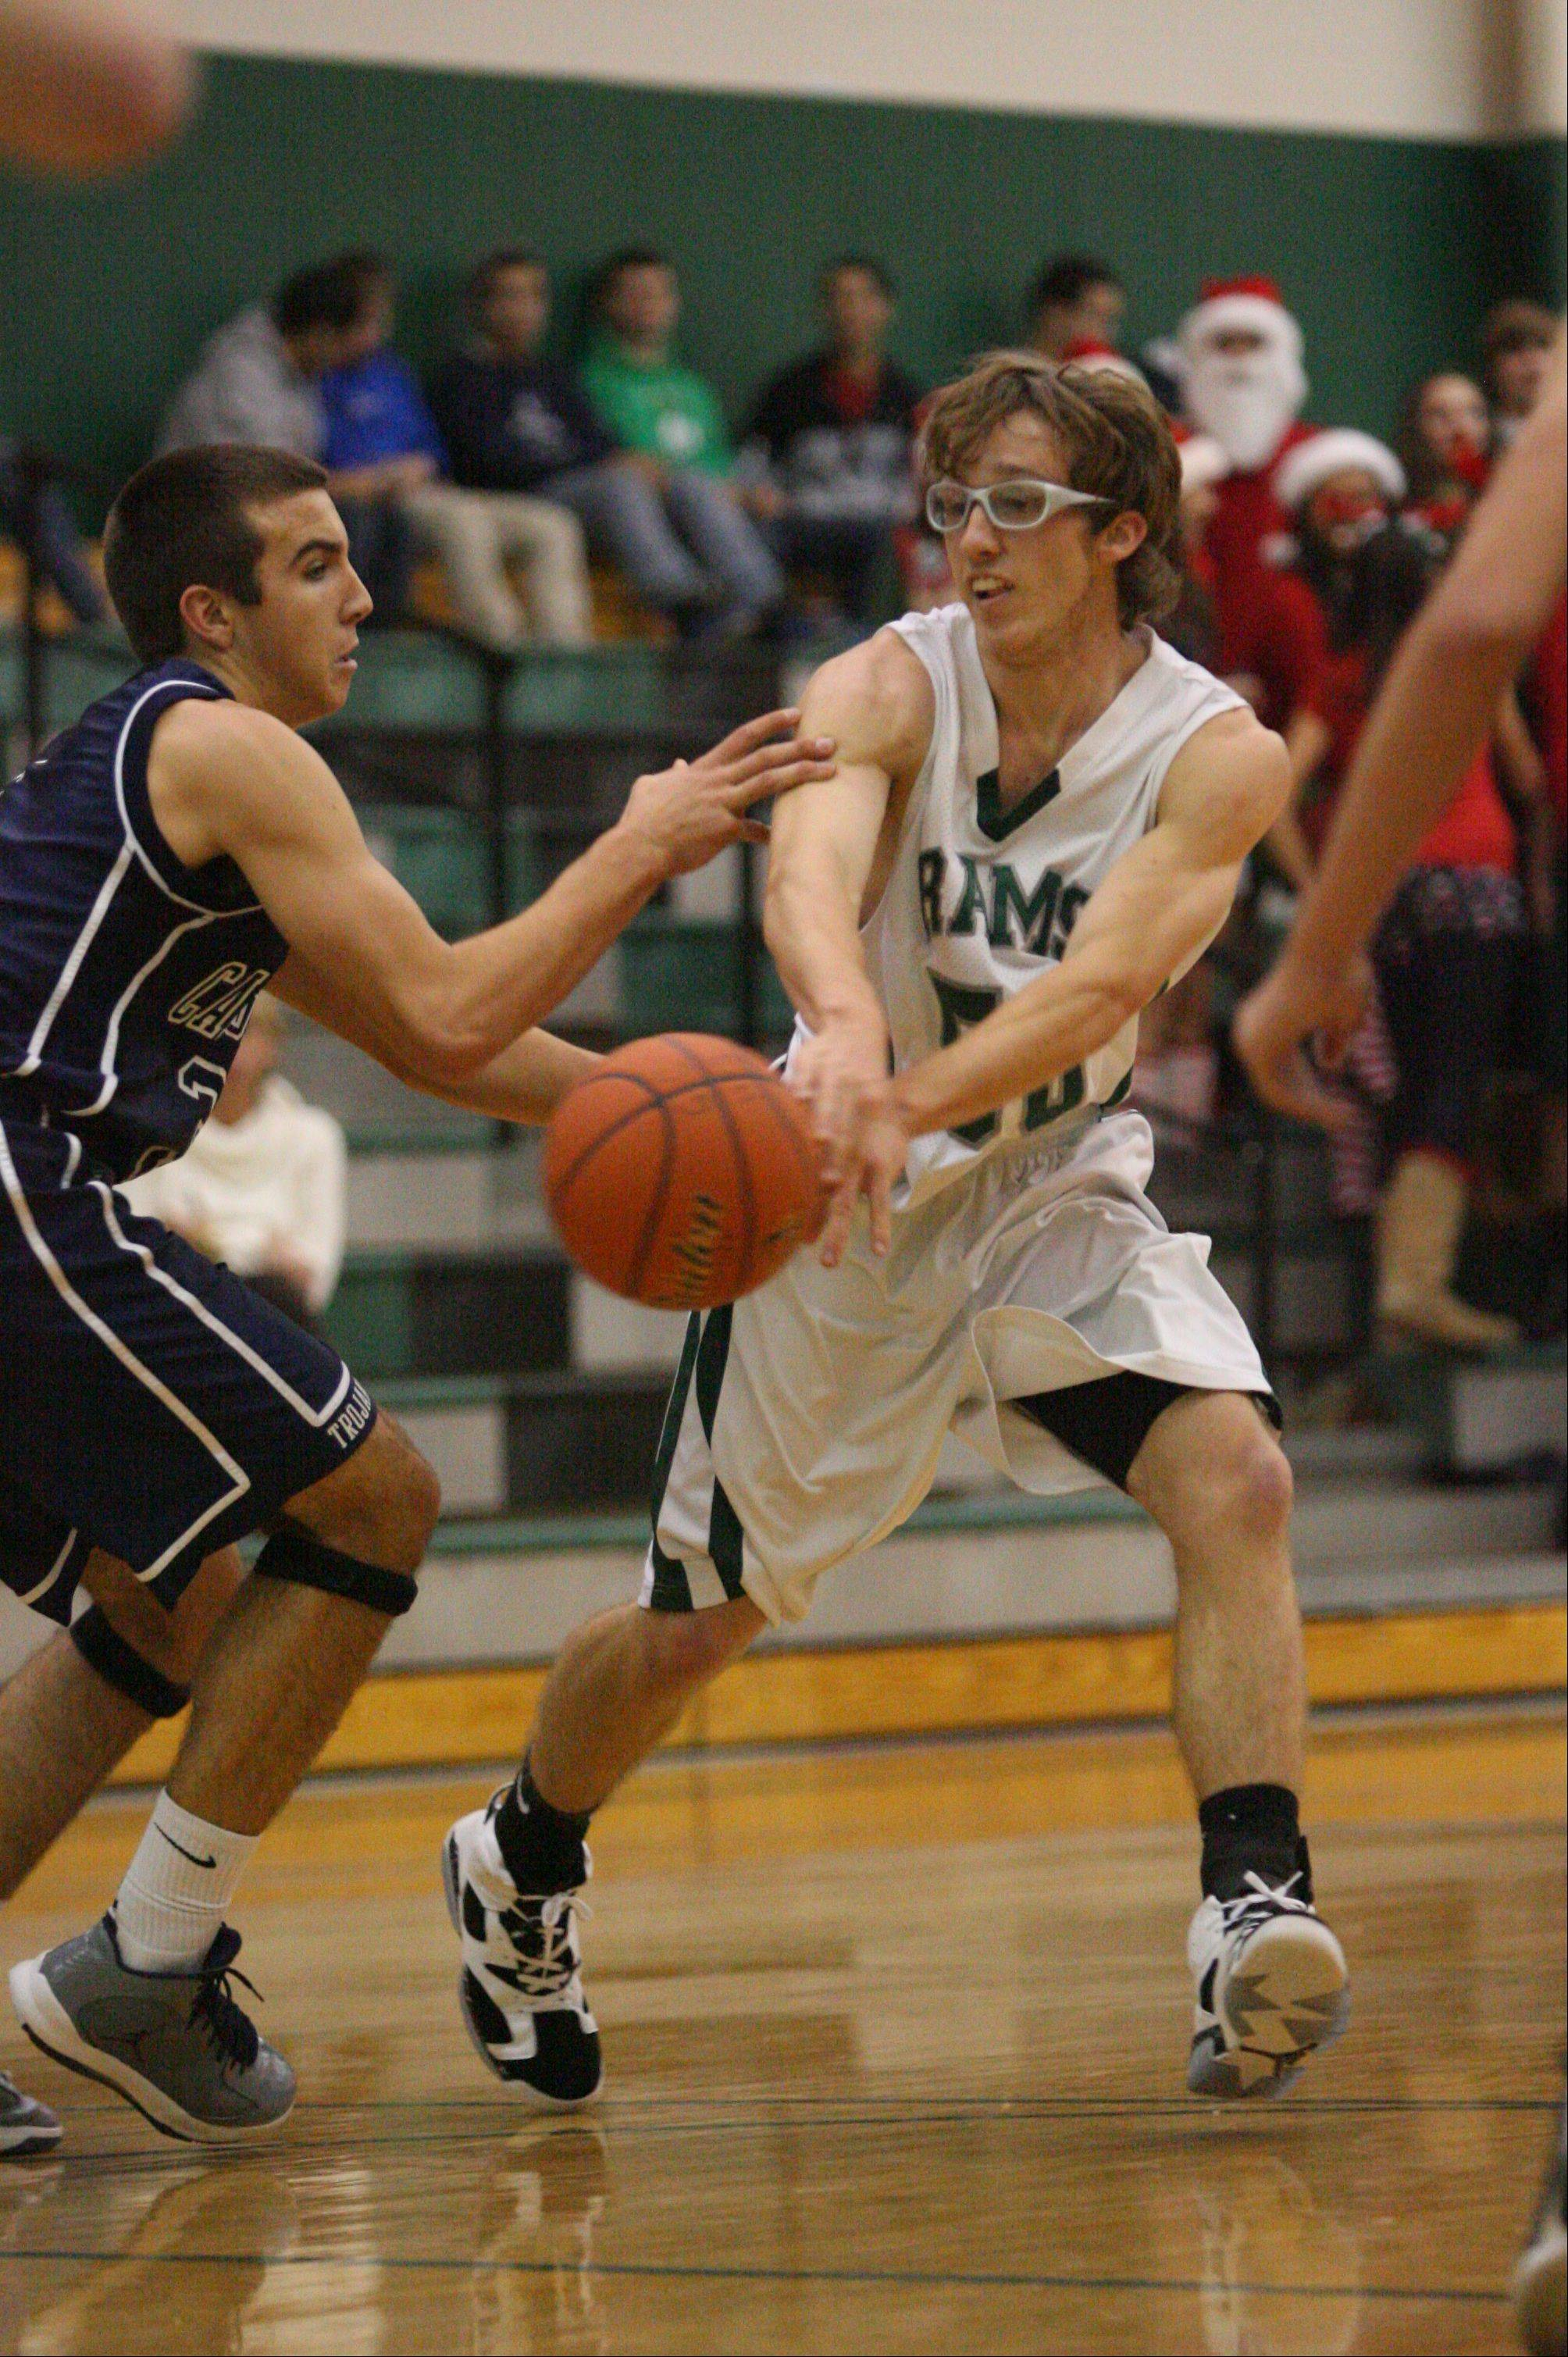 Images from the Cary-Grove at Grayslake Central boys basketball game Tuesday, Dec. 11 in Antioch.